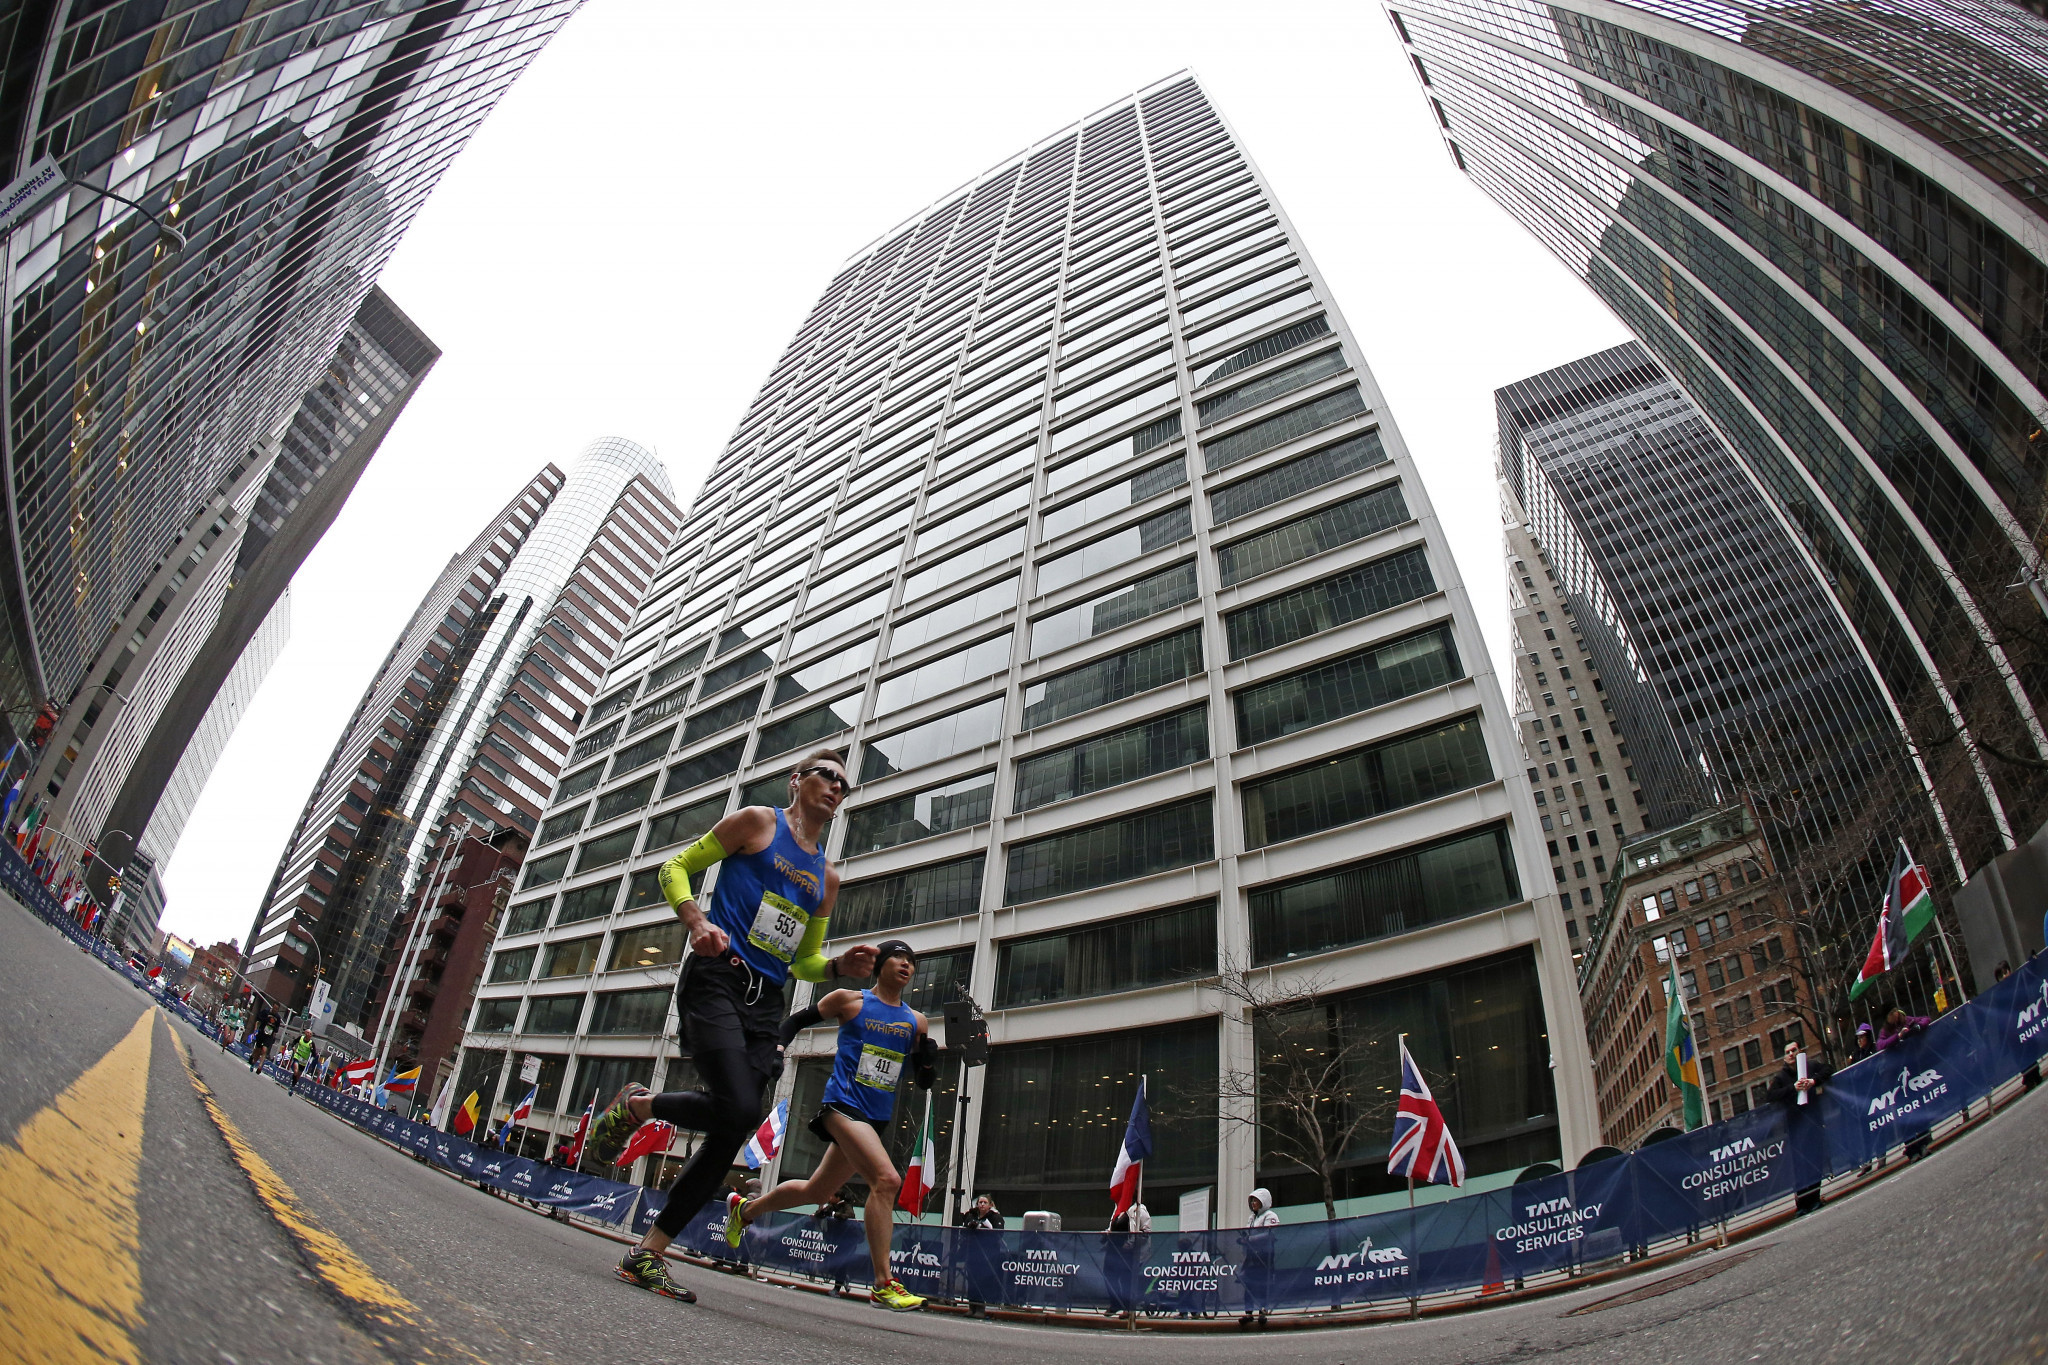 New York Half Marathon latest event cancelled due to coronavirus fears